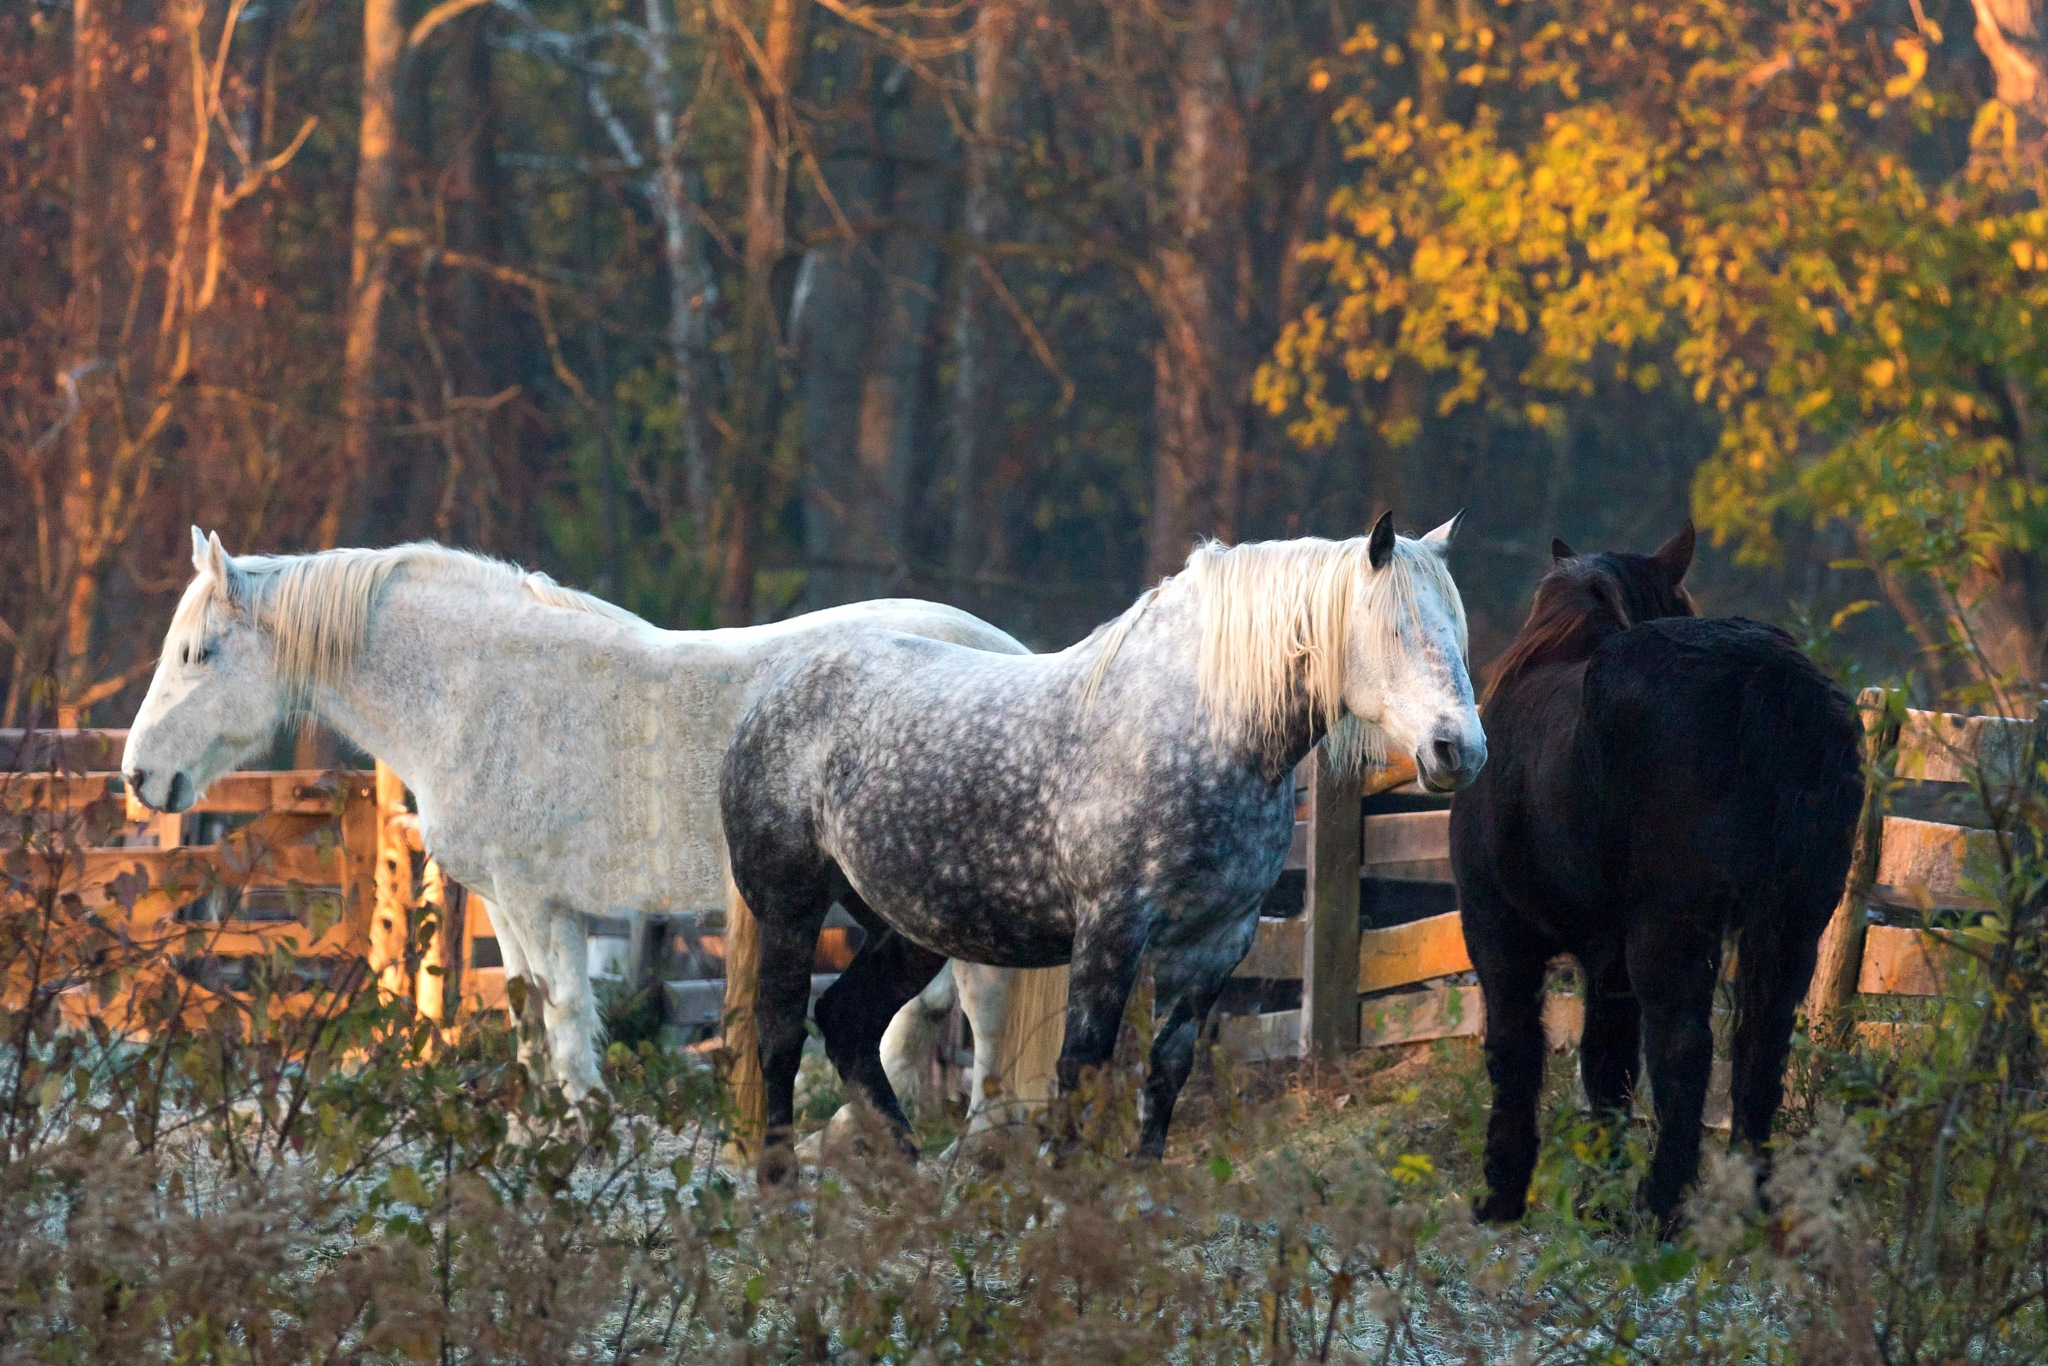 Horses Standing In The Morning Light At Carriage Hill Metropark Huber Heights Ohio 11-10-2016 by tomminutolo